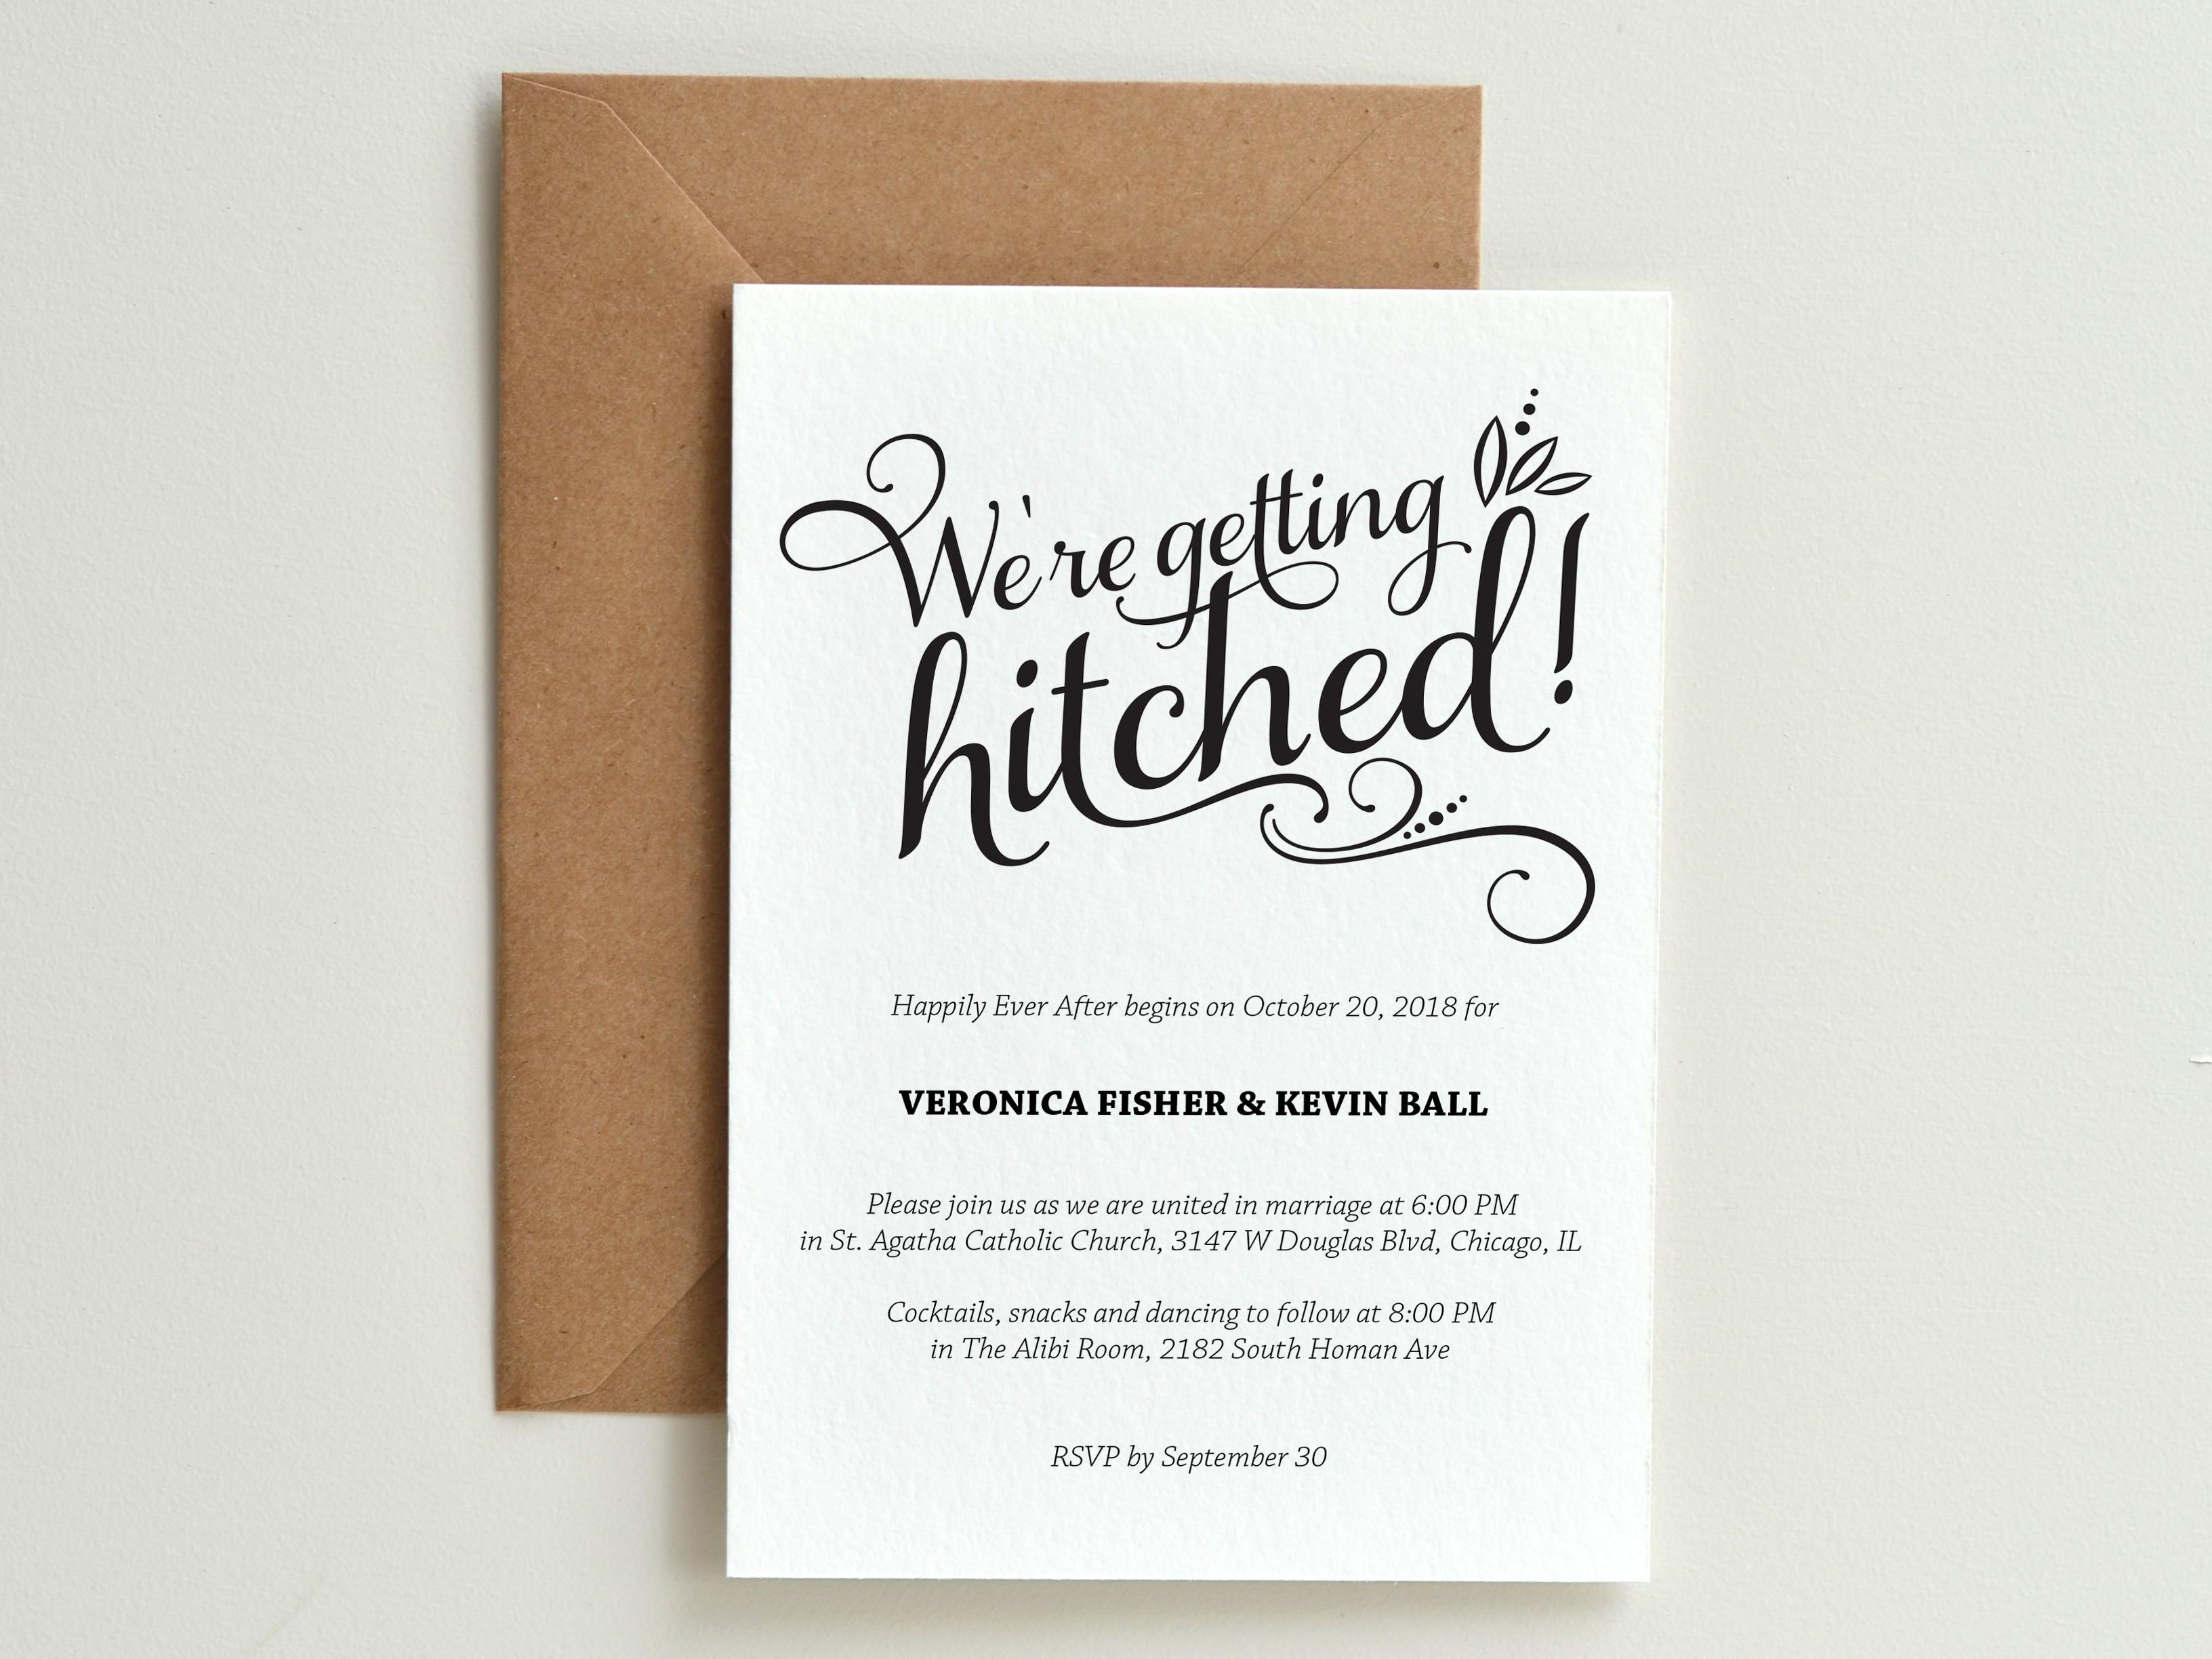 9 Funny Wedding Invitations Perfect For Every Sense Of Humor